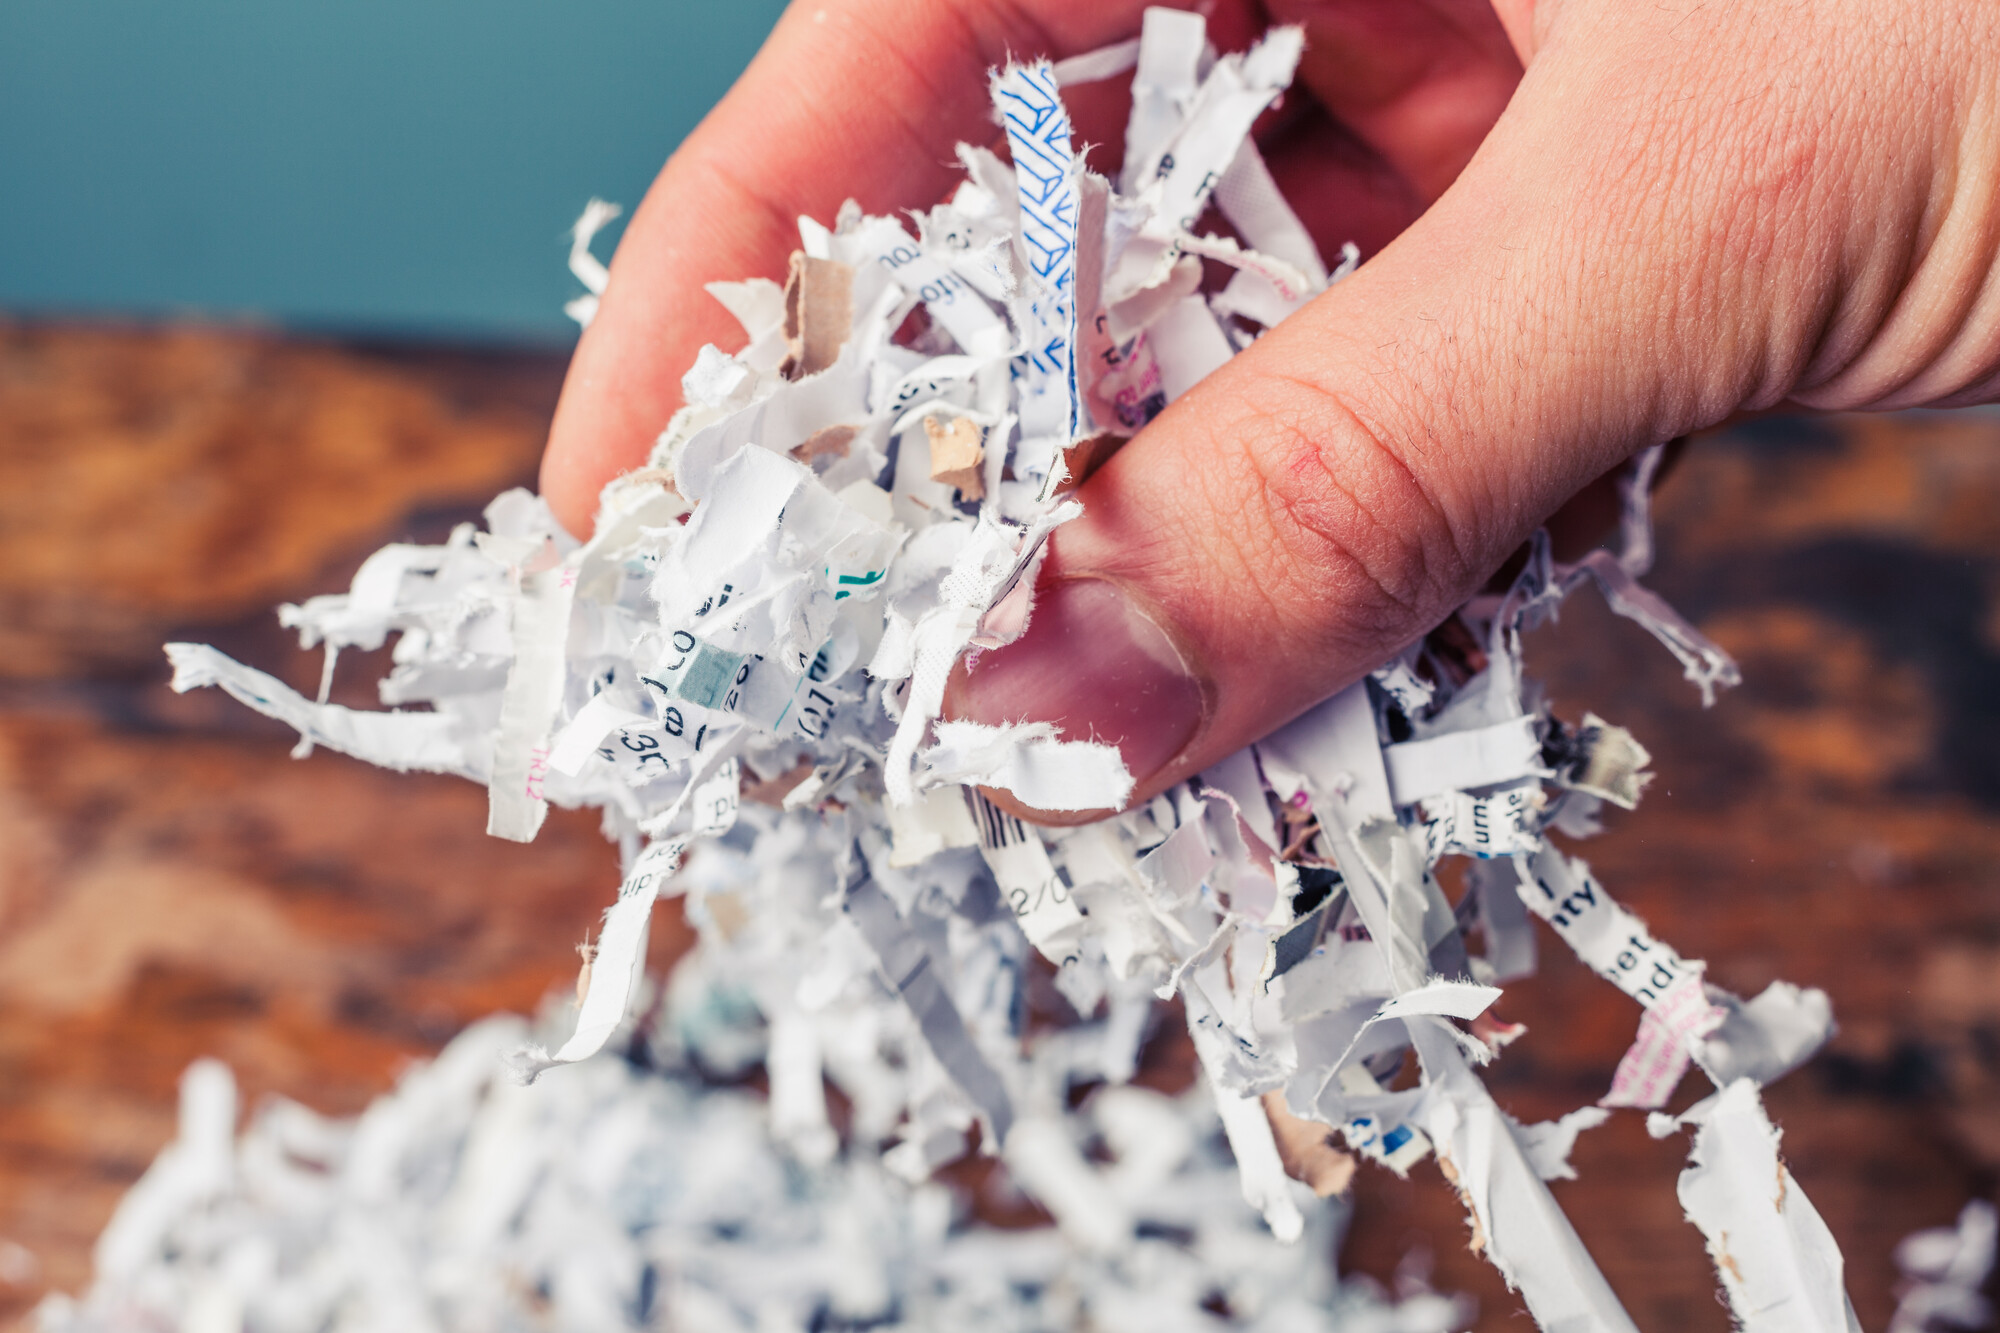 shred personal documents